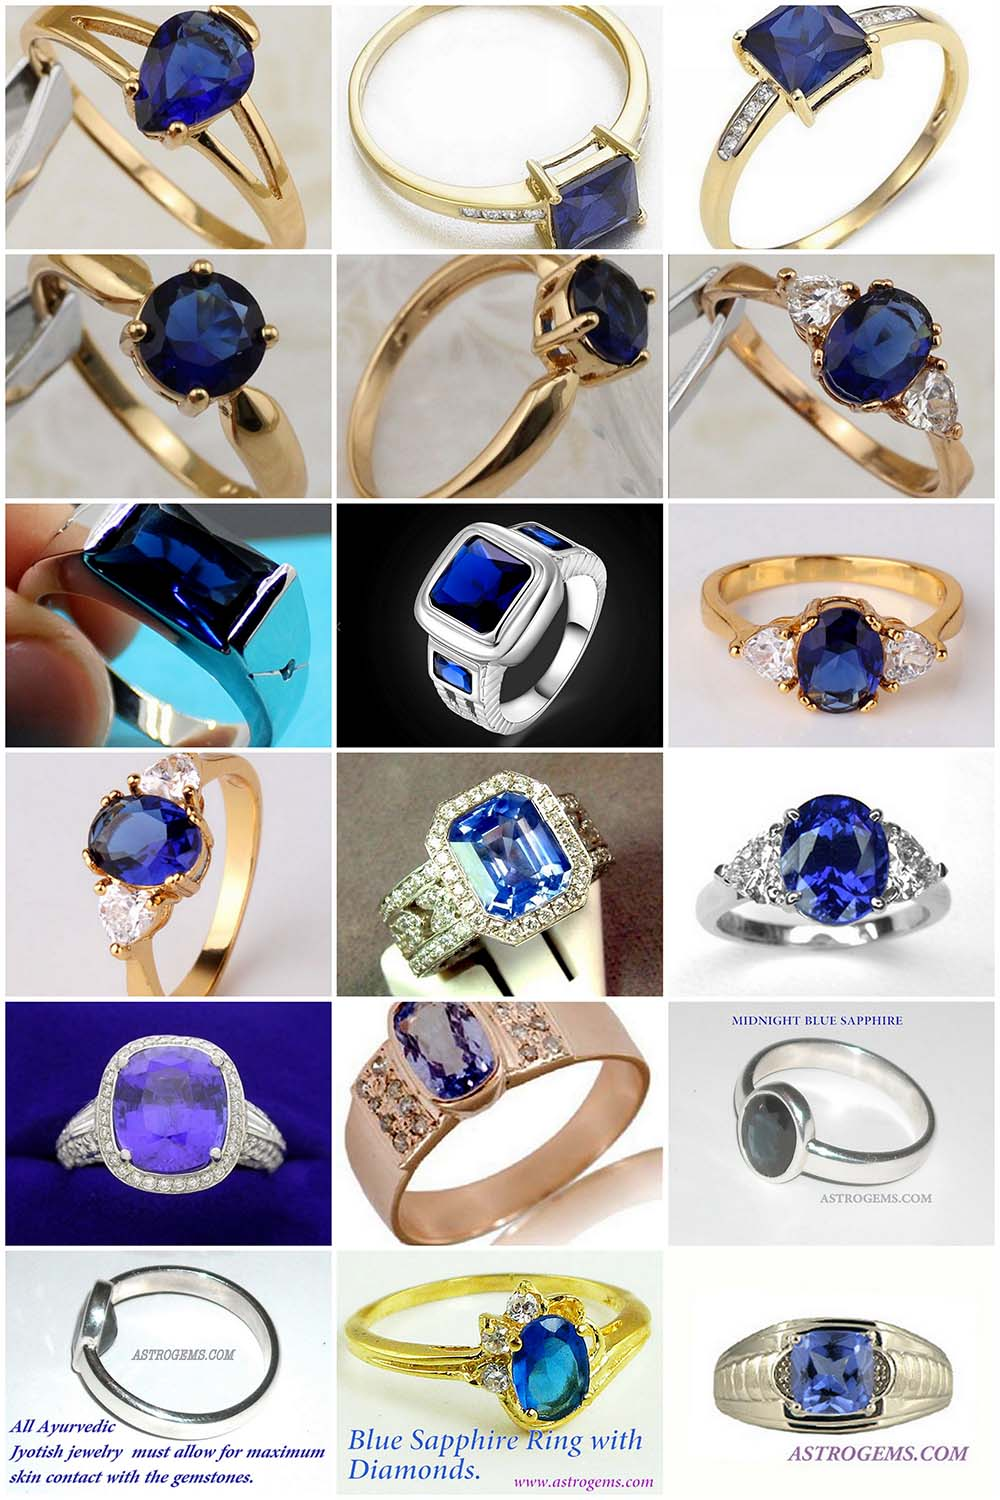 Astrogems makes healing gem rings with blue sapphire or other types of gemstones.